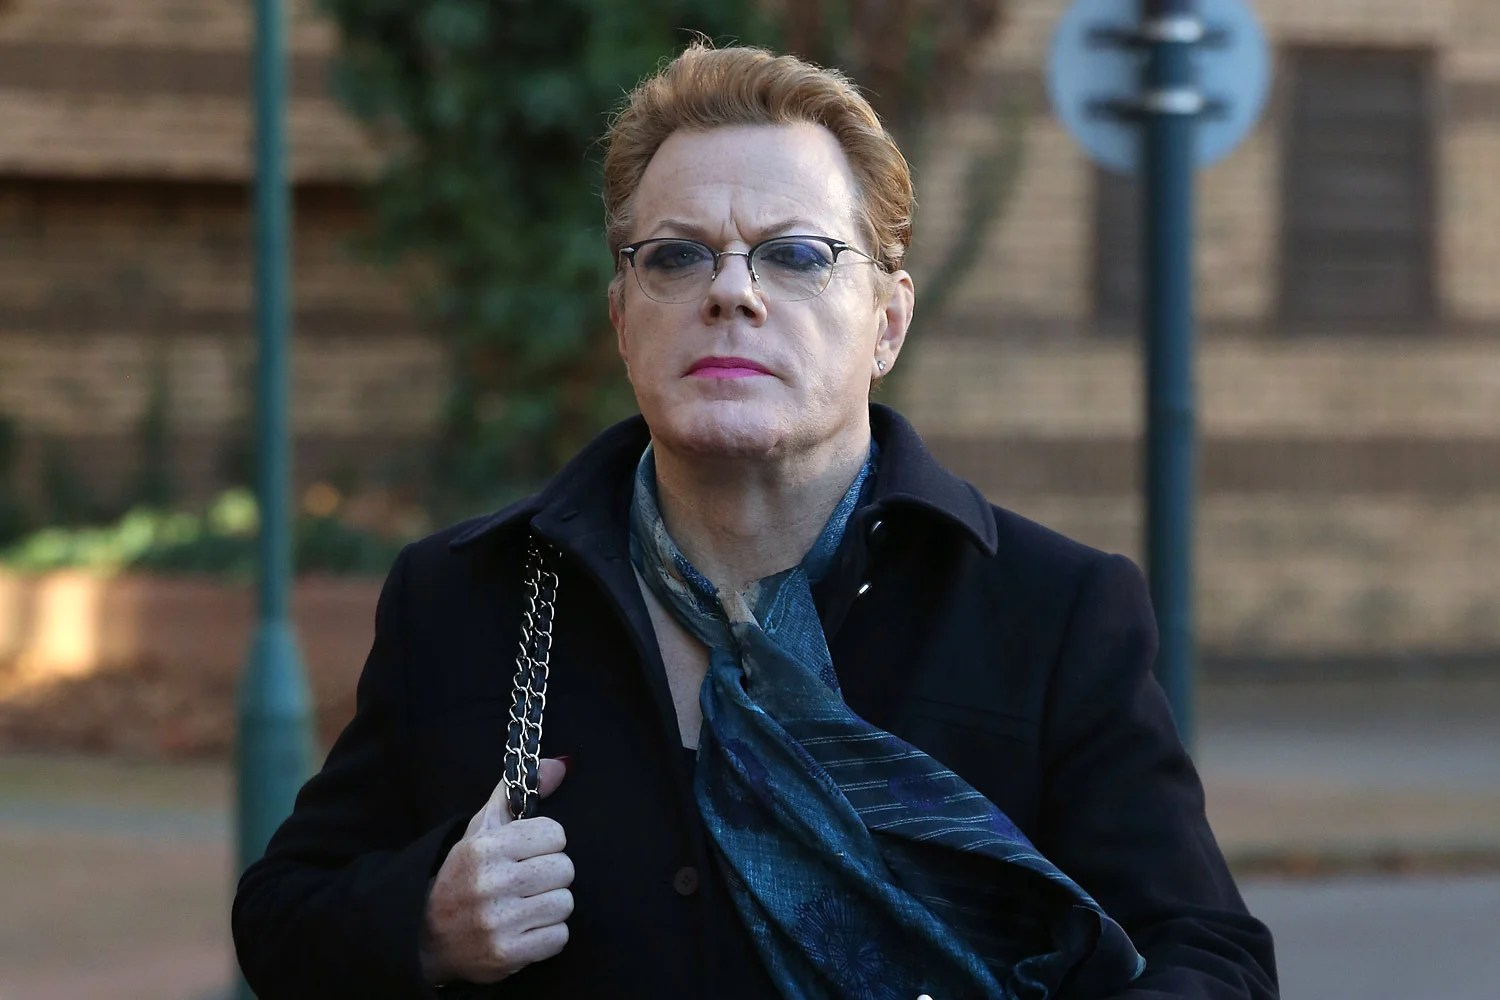 Man 24 Found Guilty After Calling Eddie Izzard A F